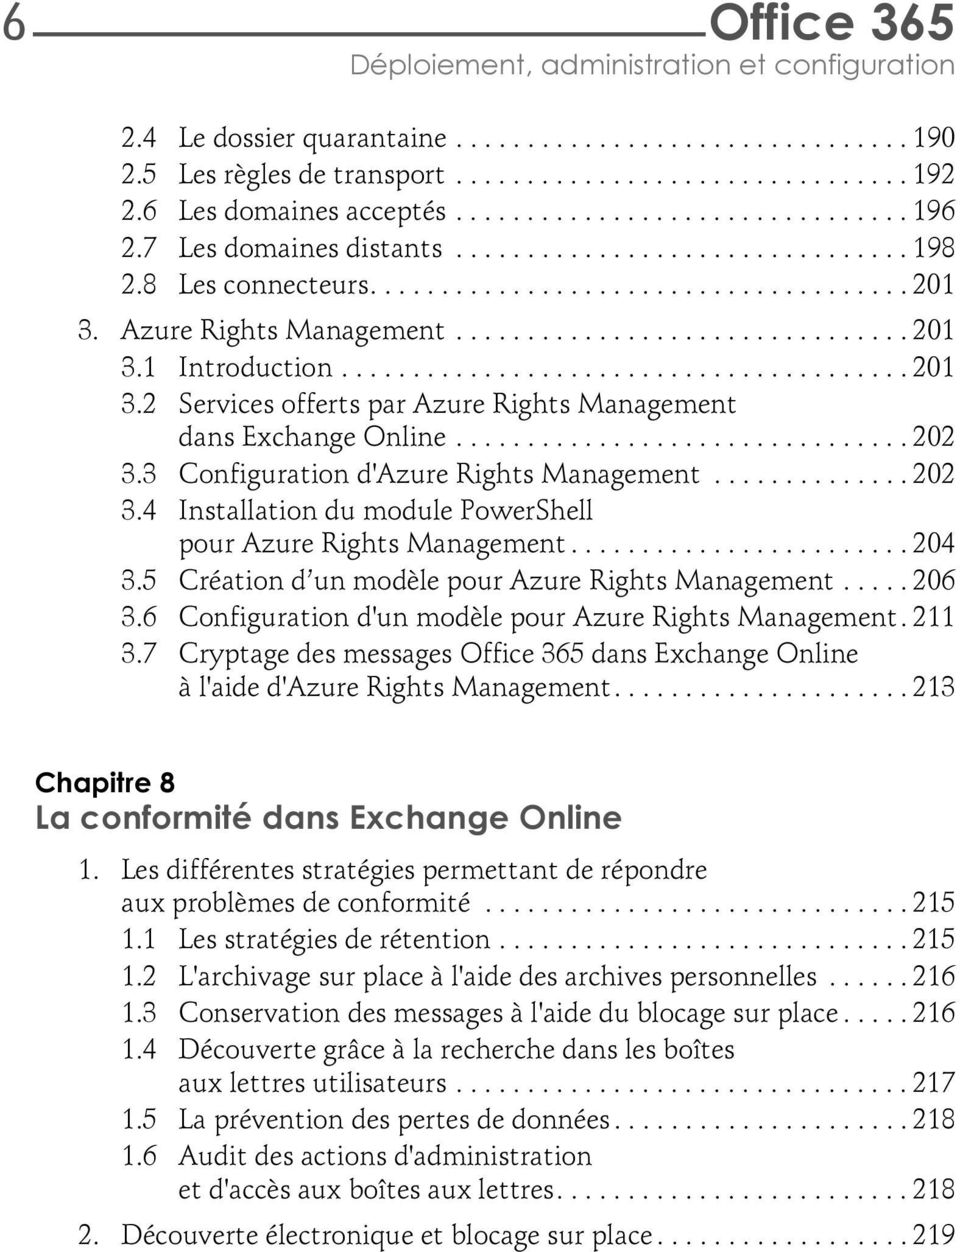 Azure Rights Management................................ 201 3.1 Introduction........................................ 201 3.2 Services offerts par Azure Rights Management dans Exchange Online................................ 202 3.